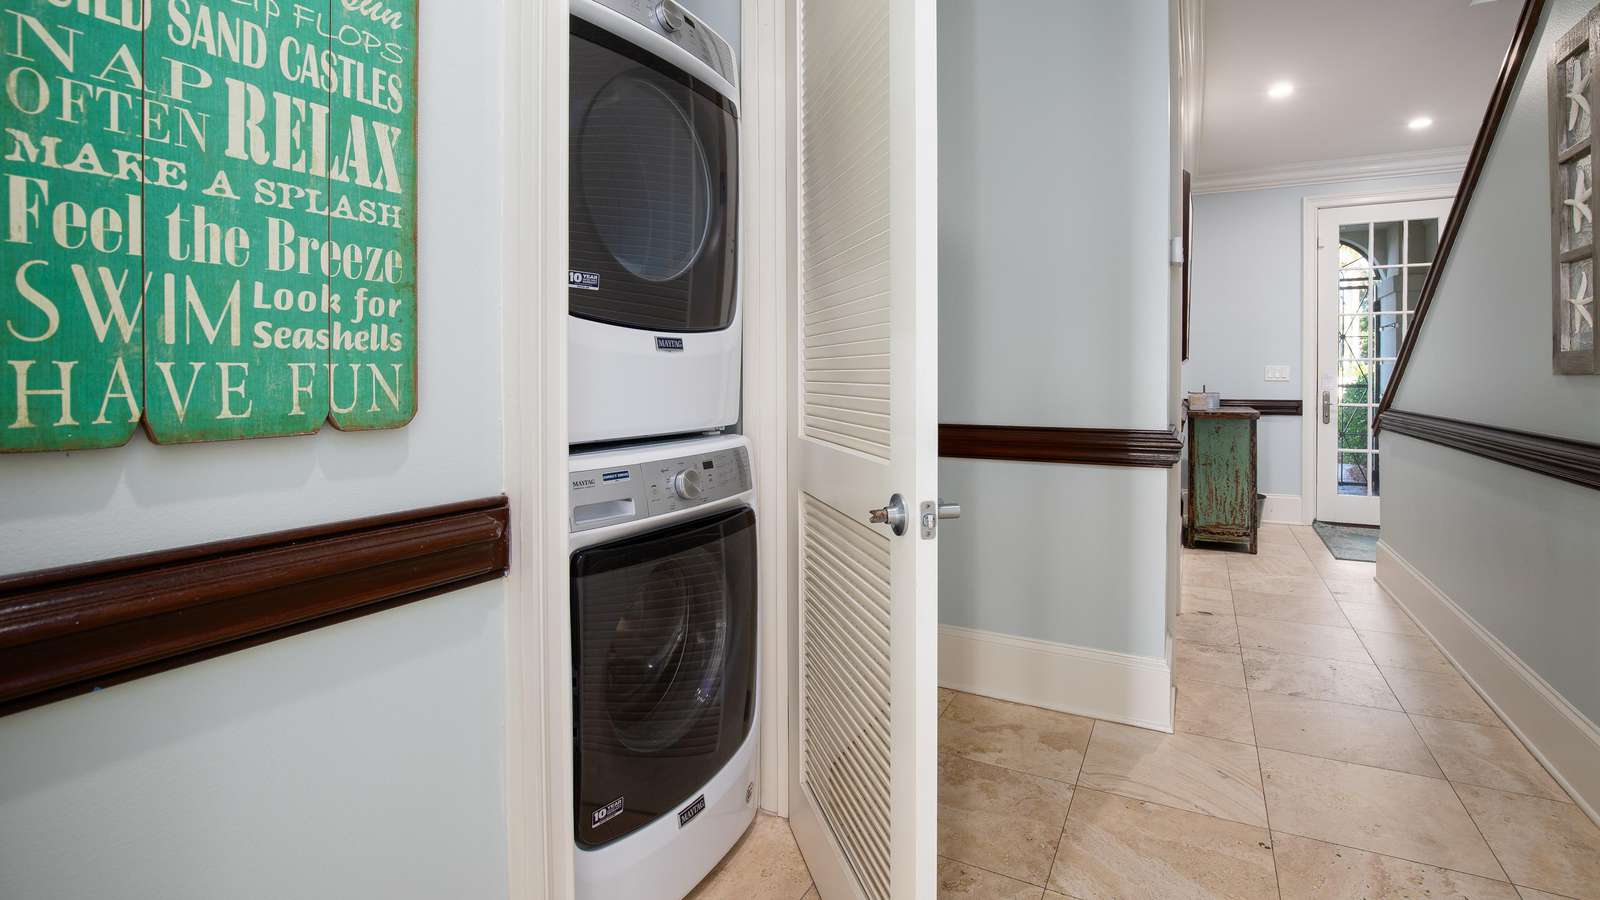 There is a large front load washer and dryer.